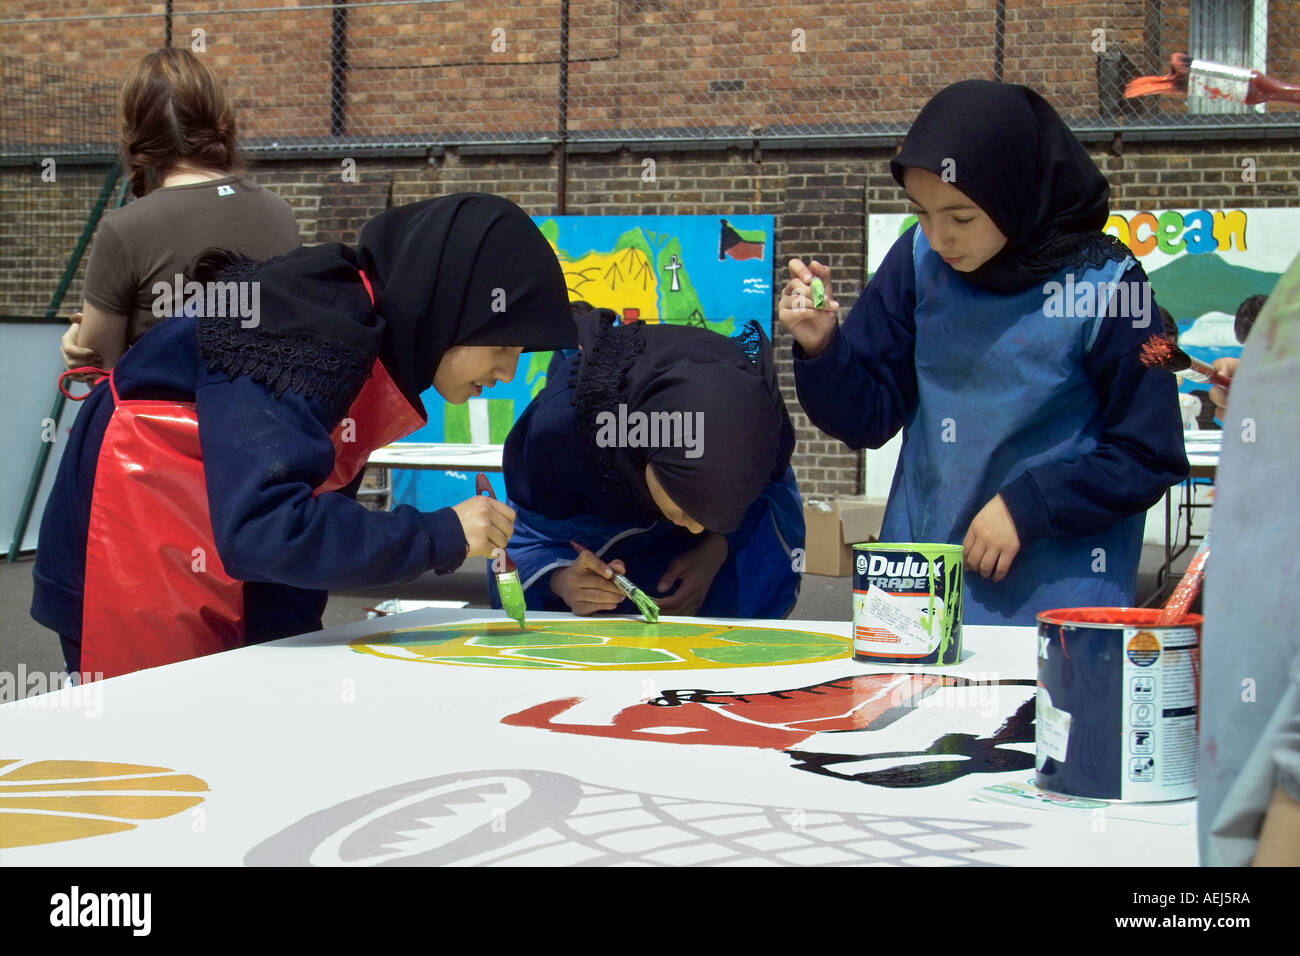 3 muslim school girls wearing hijabs painting designs on large boards - Stock Image